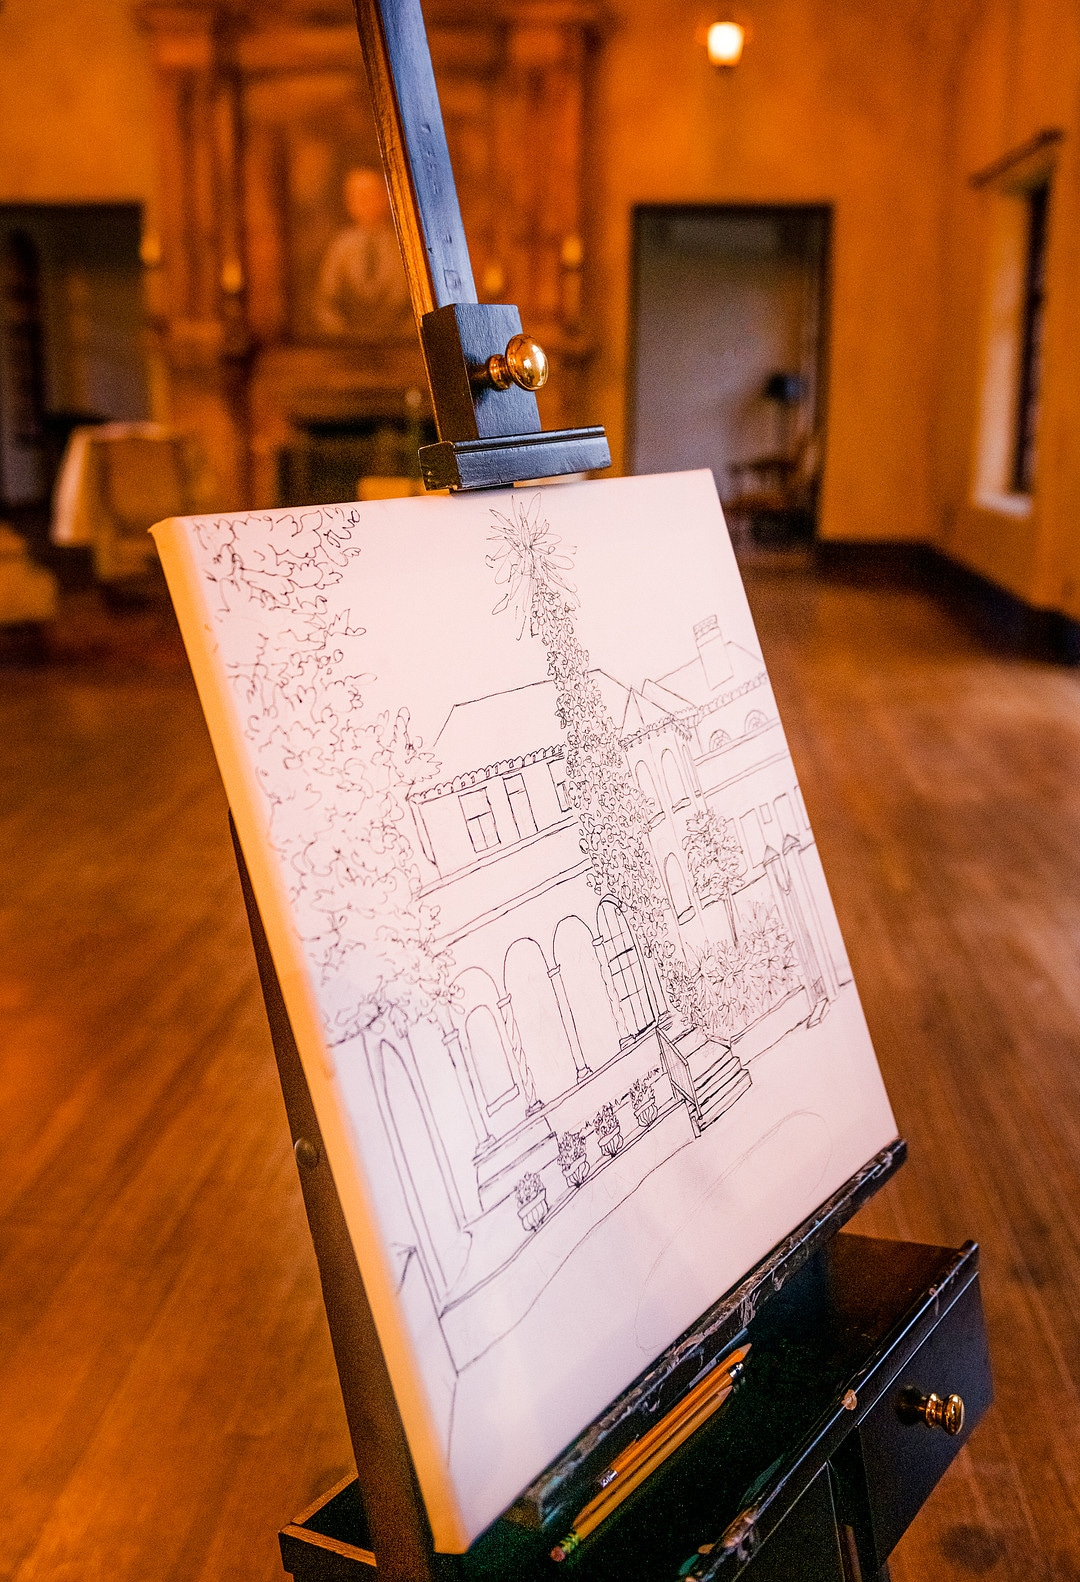 final painting from live event painter at wedding depicting the line drawing of the historic wedding venue on easel with fireplace in the background